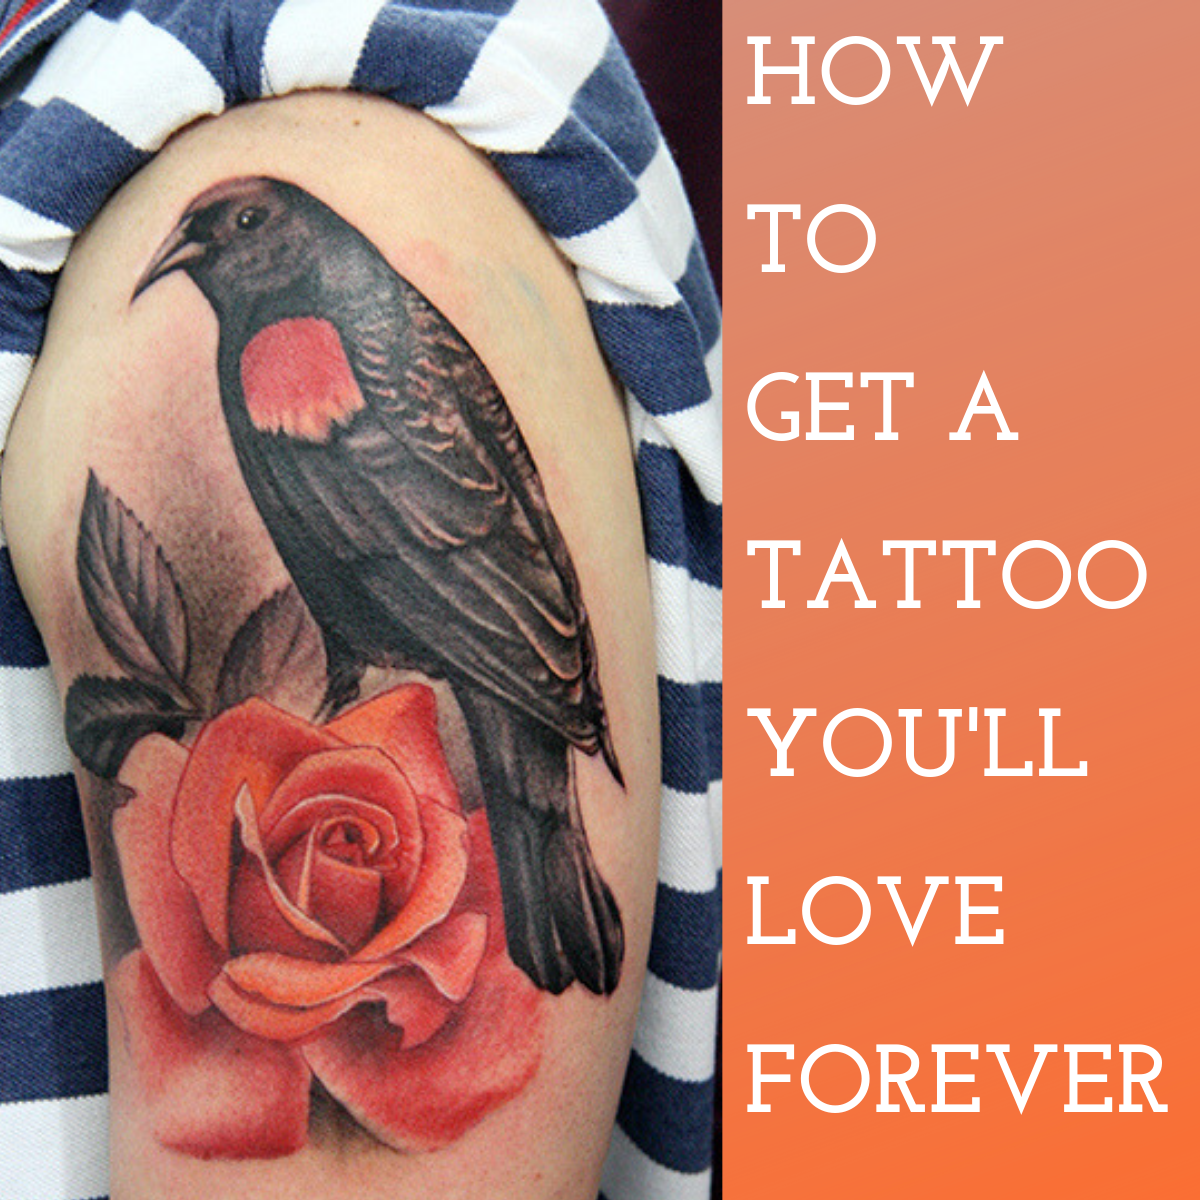 b0df1df7be960 A Tattoo Artist's Tips for Getting a Tattoo You'll Love Forever ...